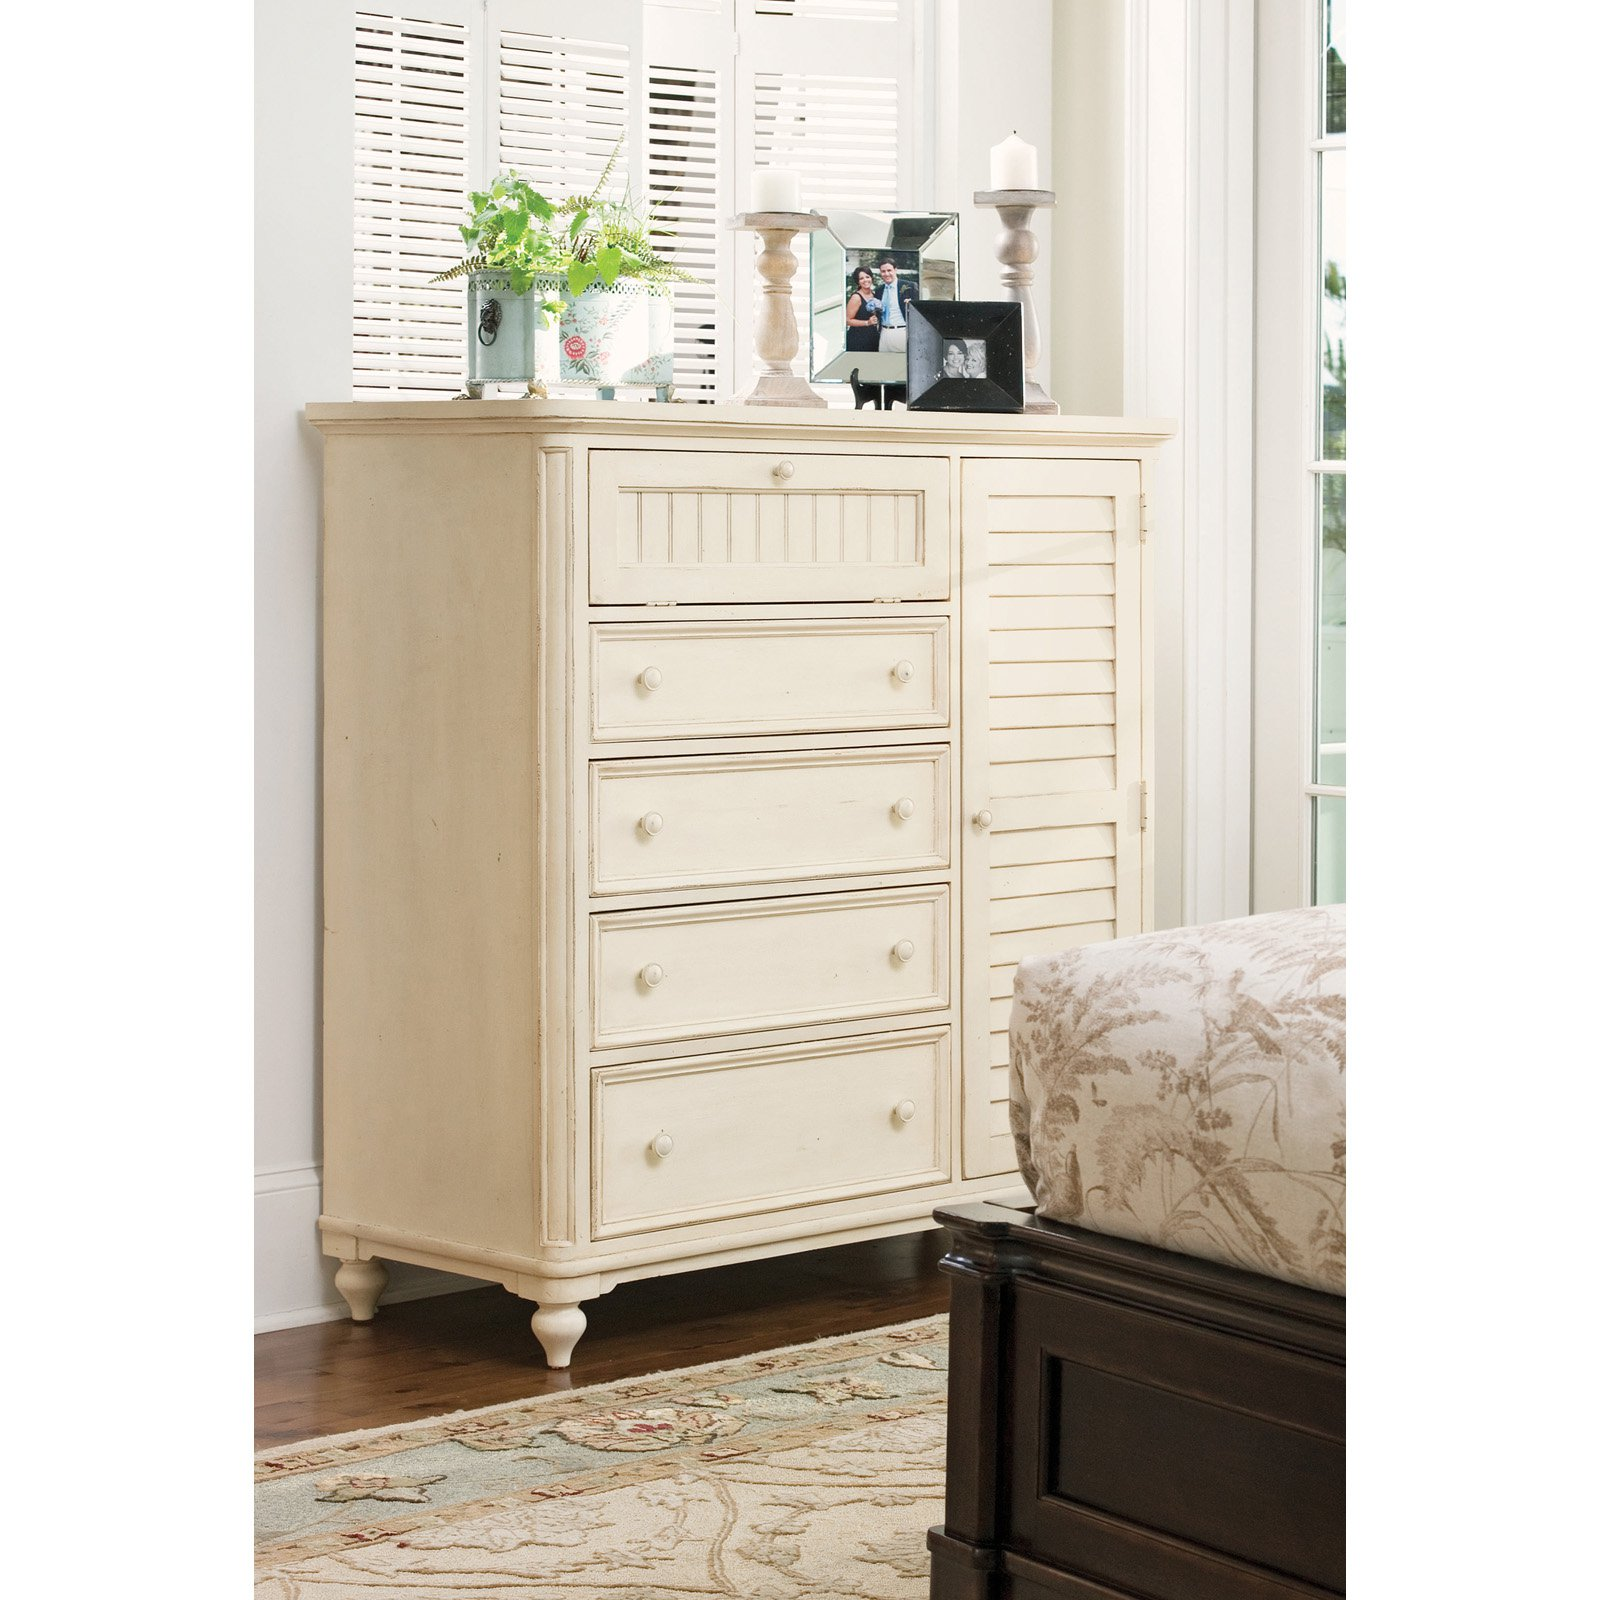 Picture of: Tall Dressers in Bedroom